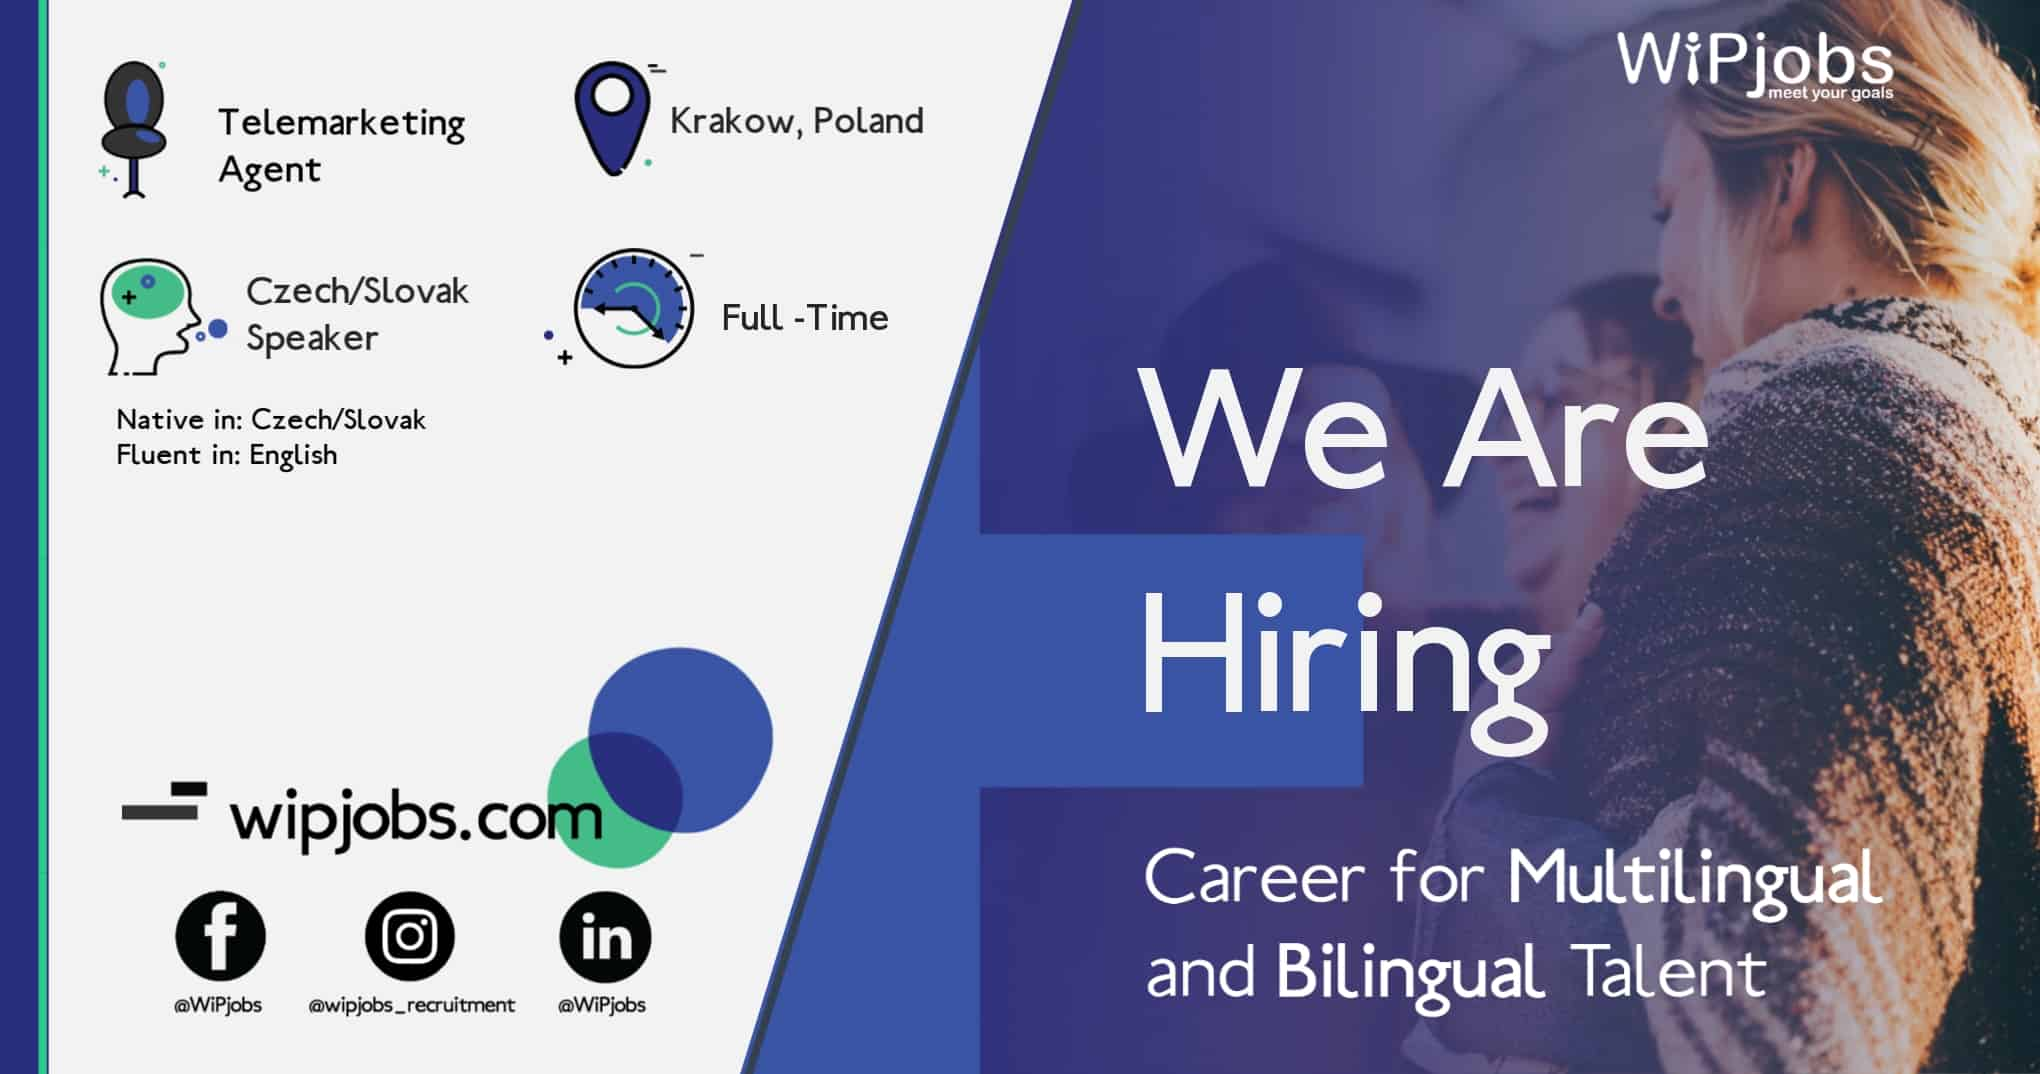 Telemarketing-Agent-CZECH-SLOVAK-Speaker